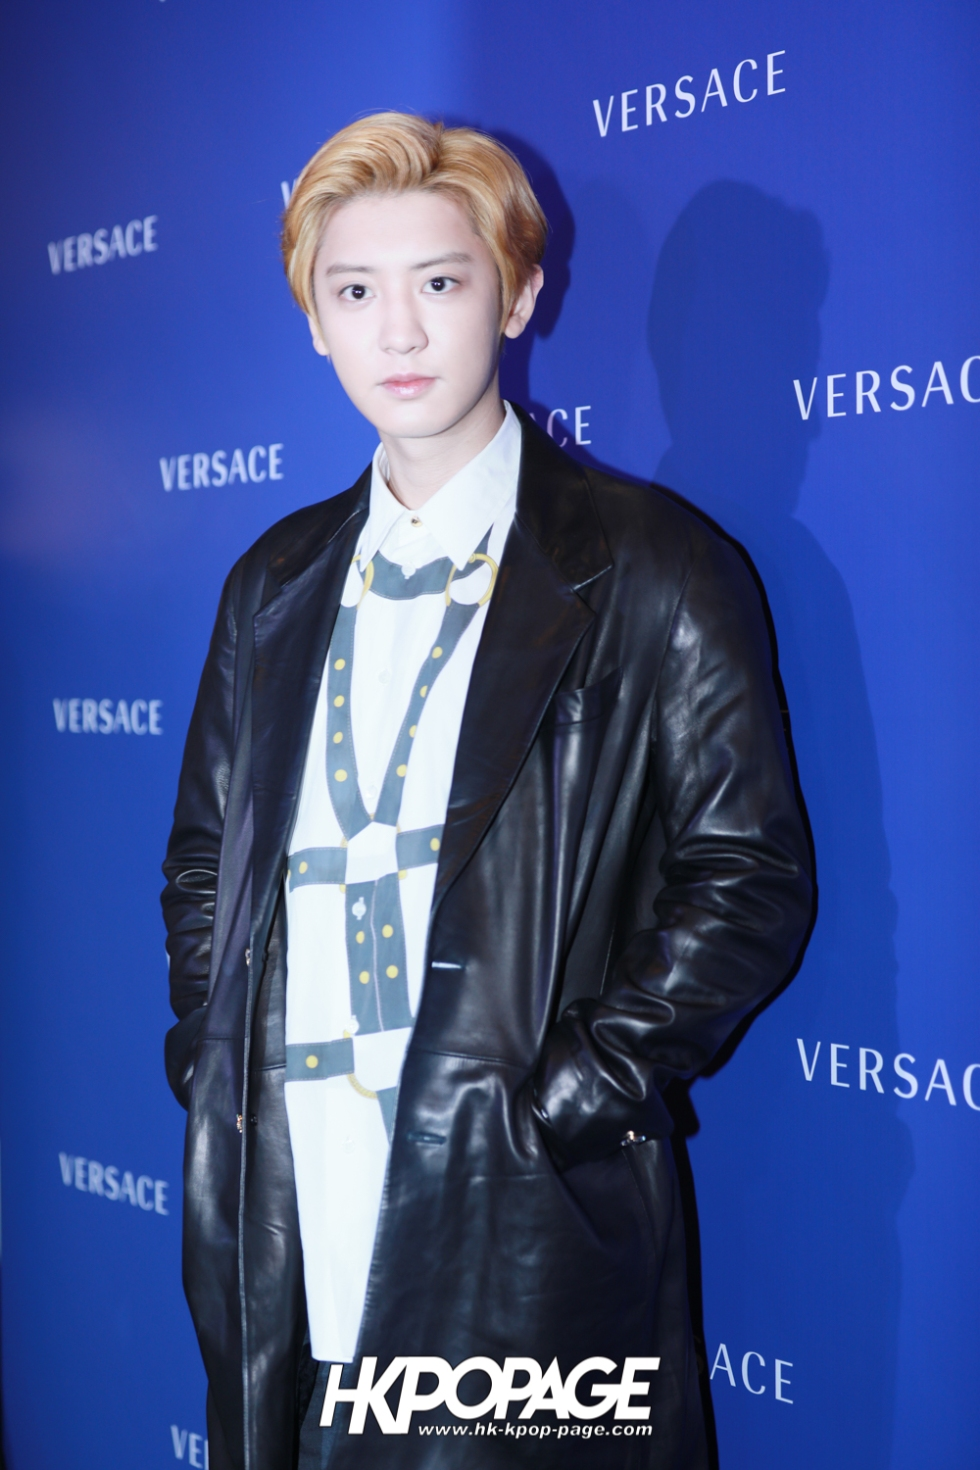 [HK.KPOP.PAGE] 190426_Chanyeol_VERSACE EVENT-7